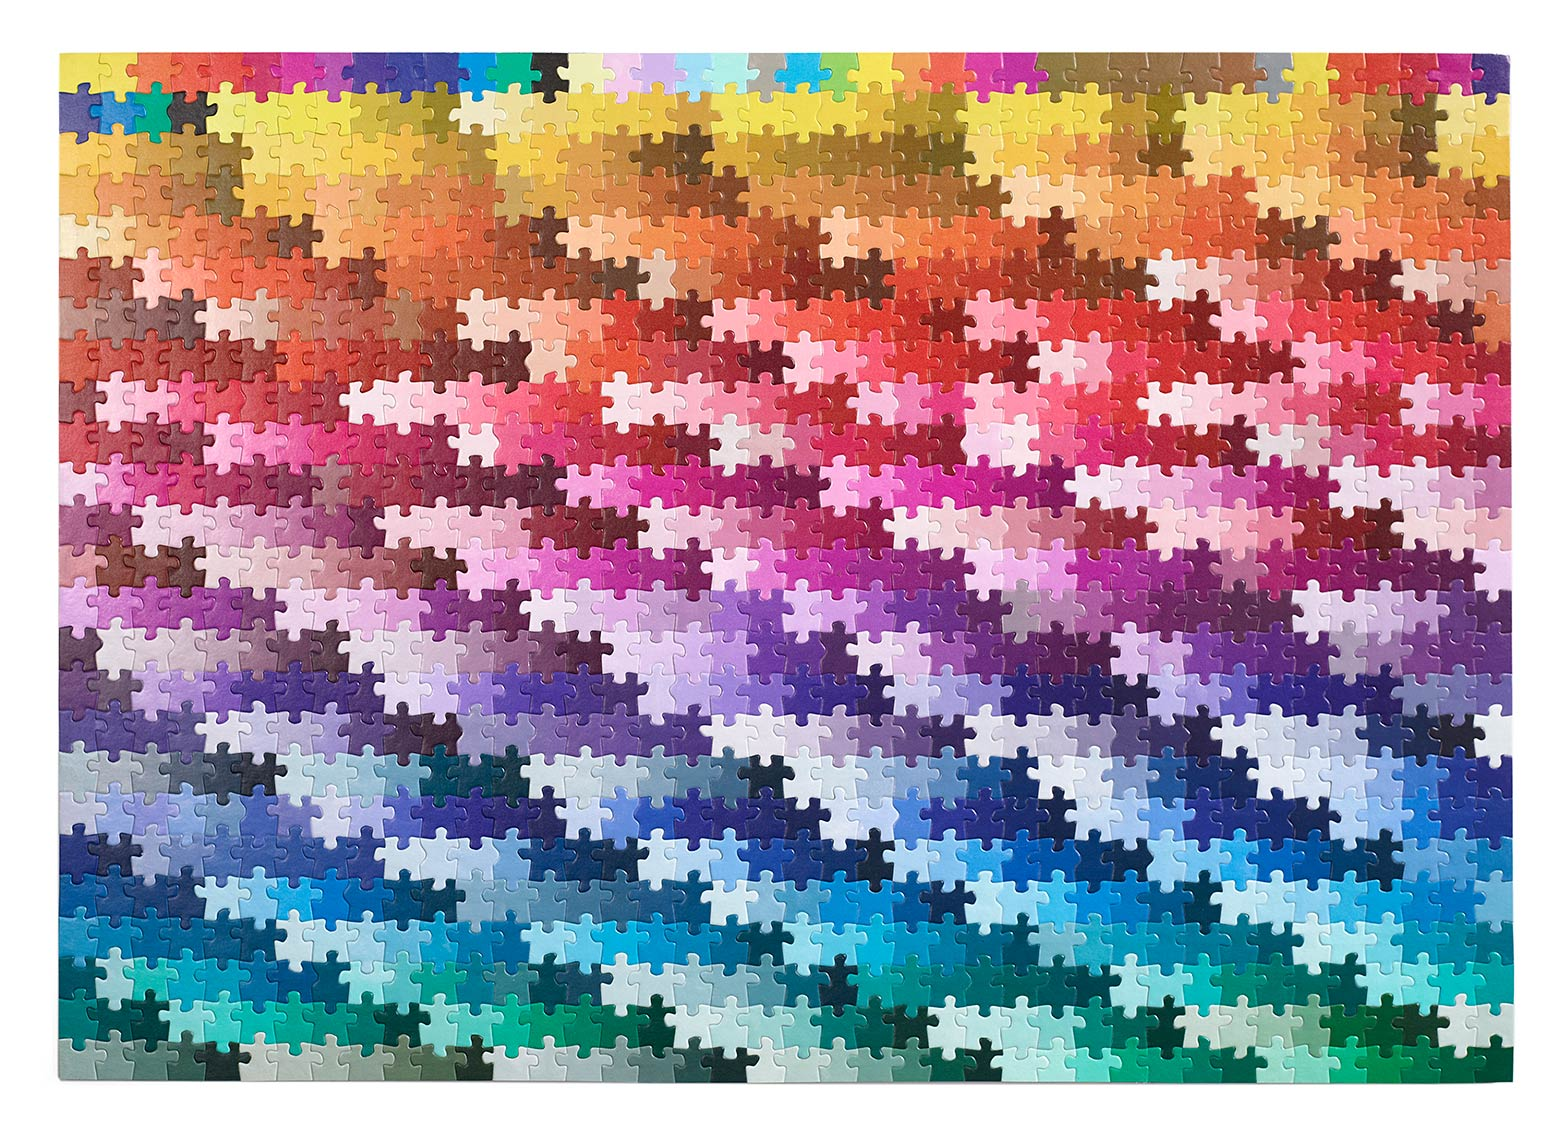 1000-pantone-colours-1000-piece-puzzle_2014_Digital-print-on-diecut-paperboard_26x19